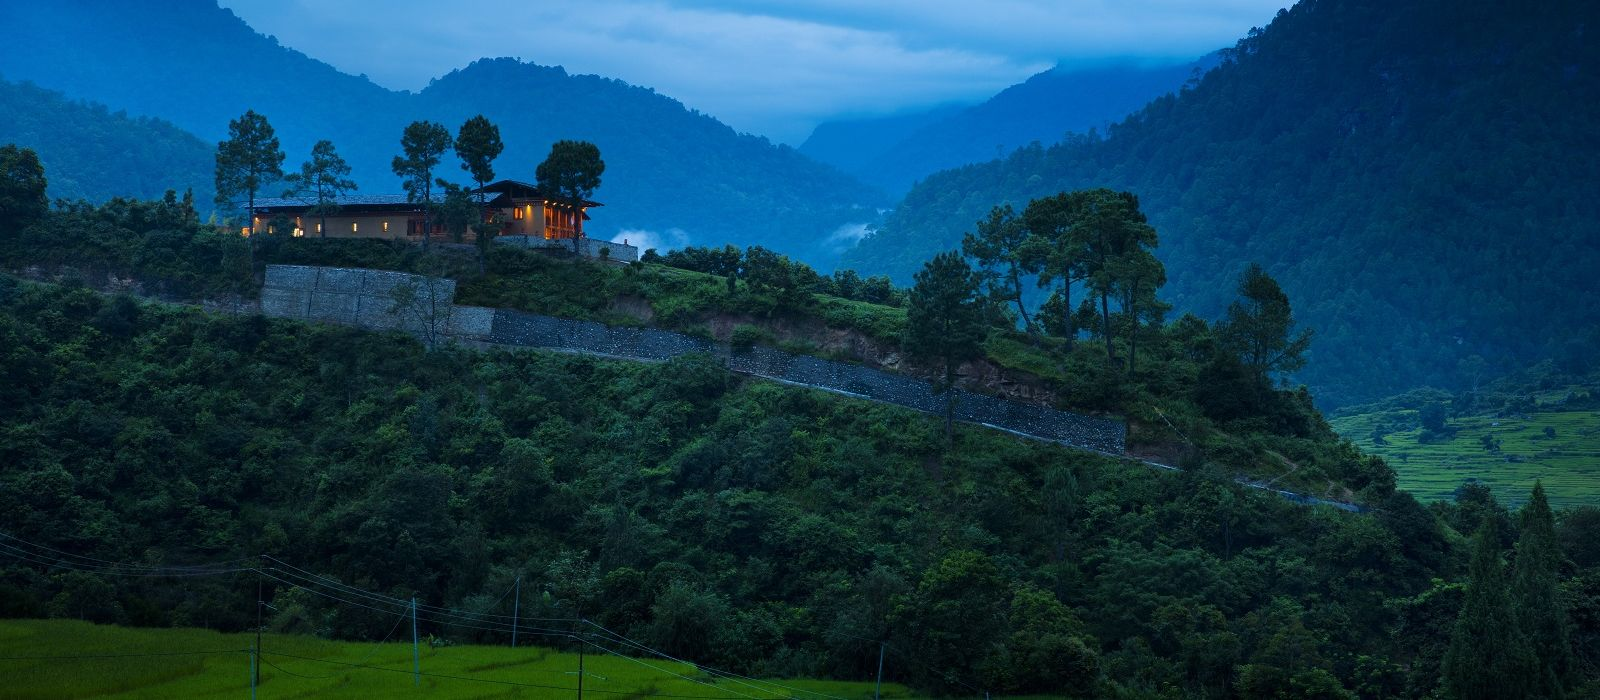 Luxury Bhutan & Thailand Paradise Islands Tour Trip 7